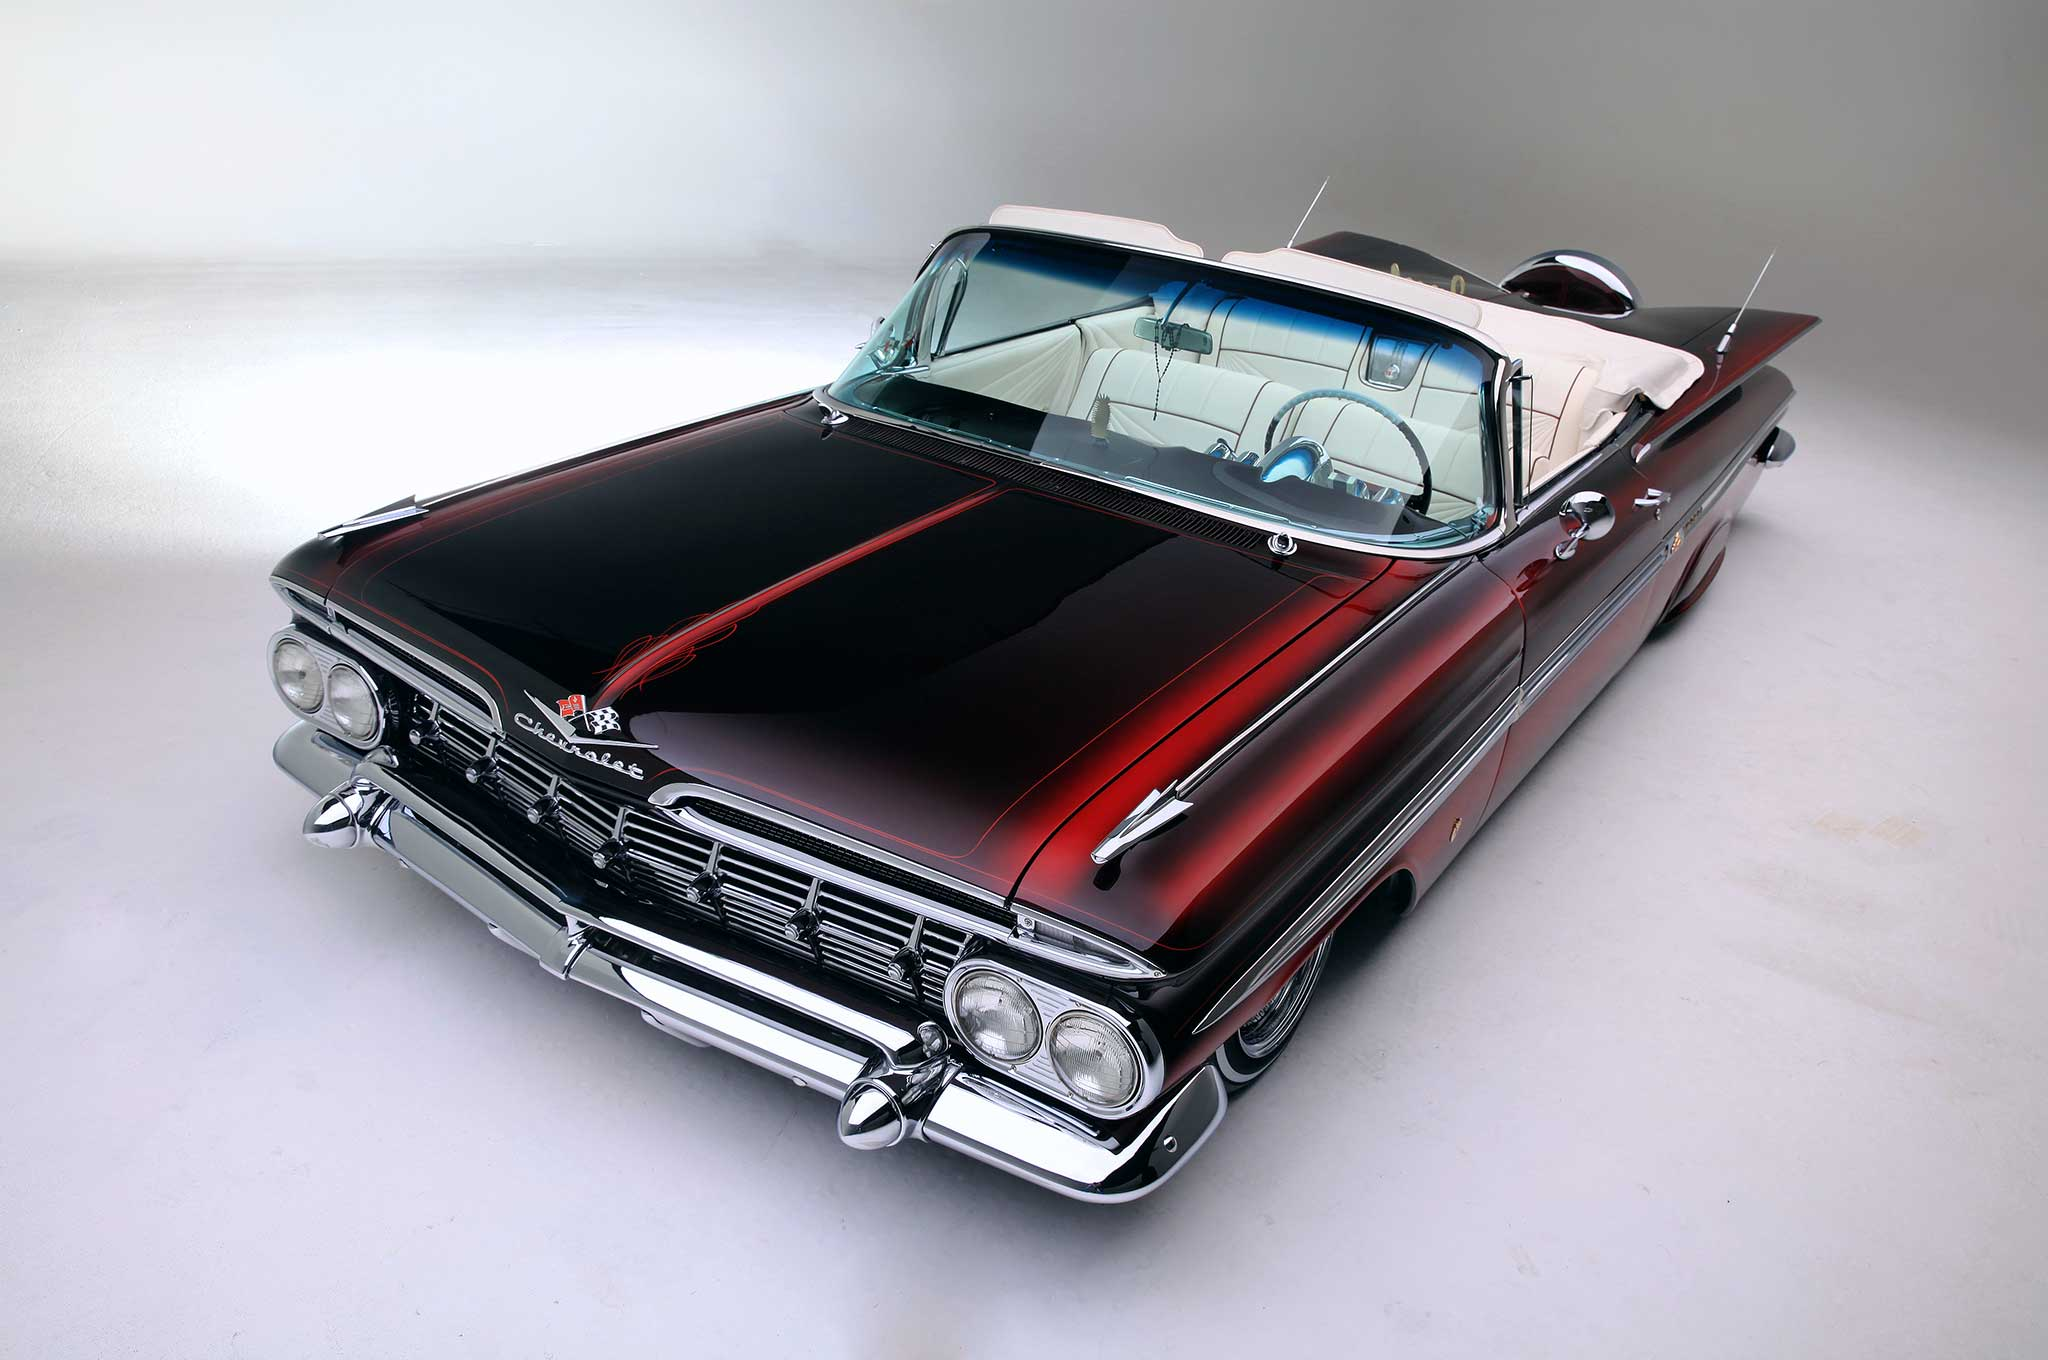 Selling An Original 62 Impala To Buy A 59 Impala Project